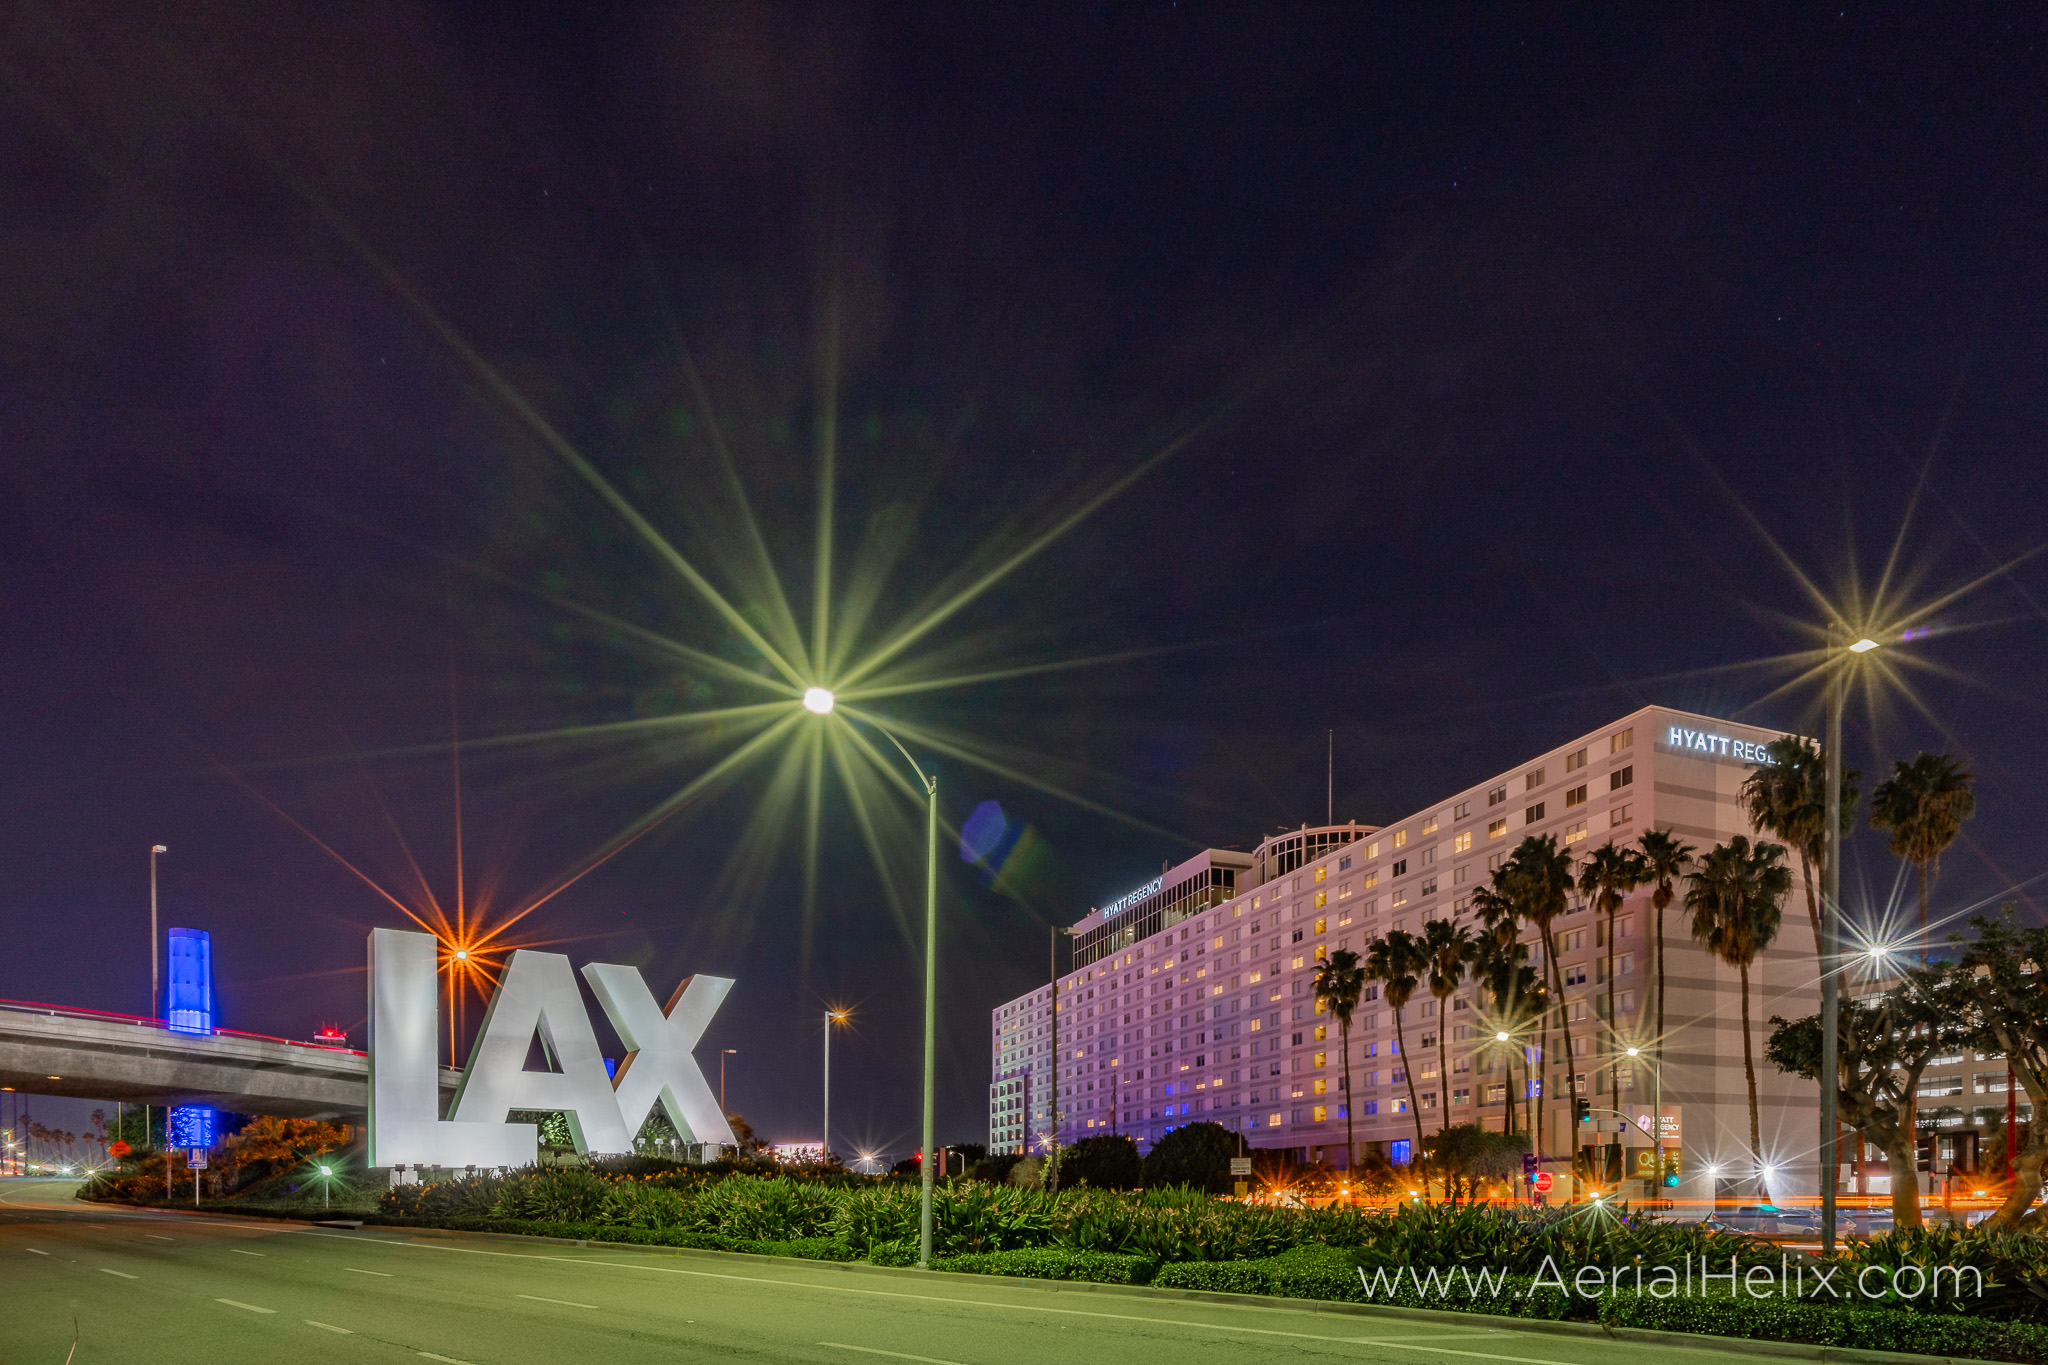 Hyatt Regency LAX small-216.jpg